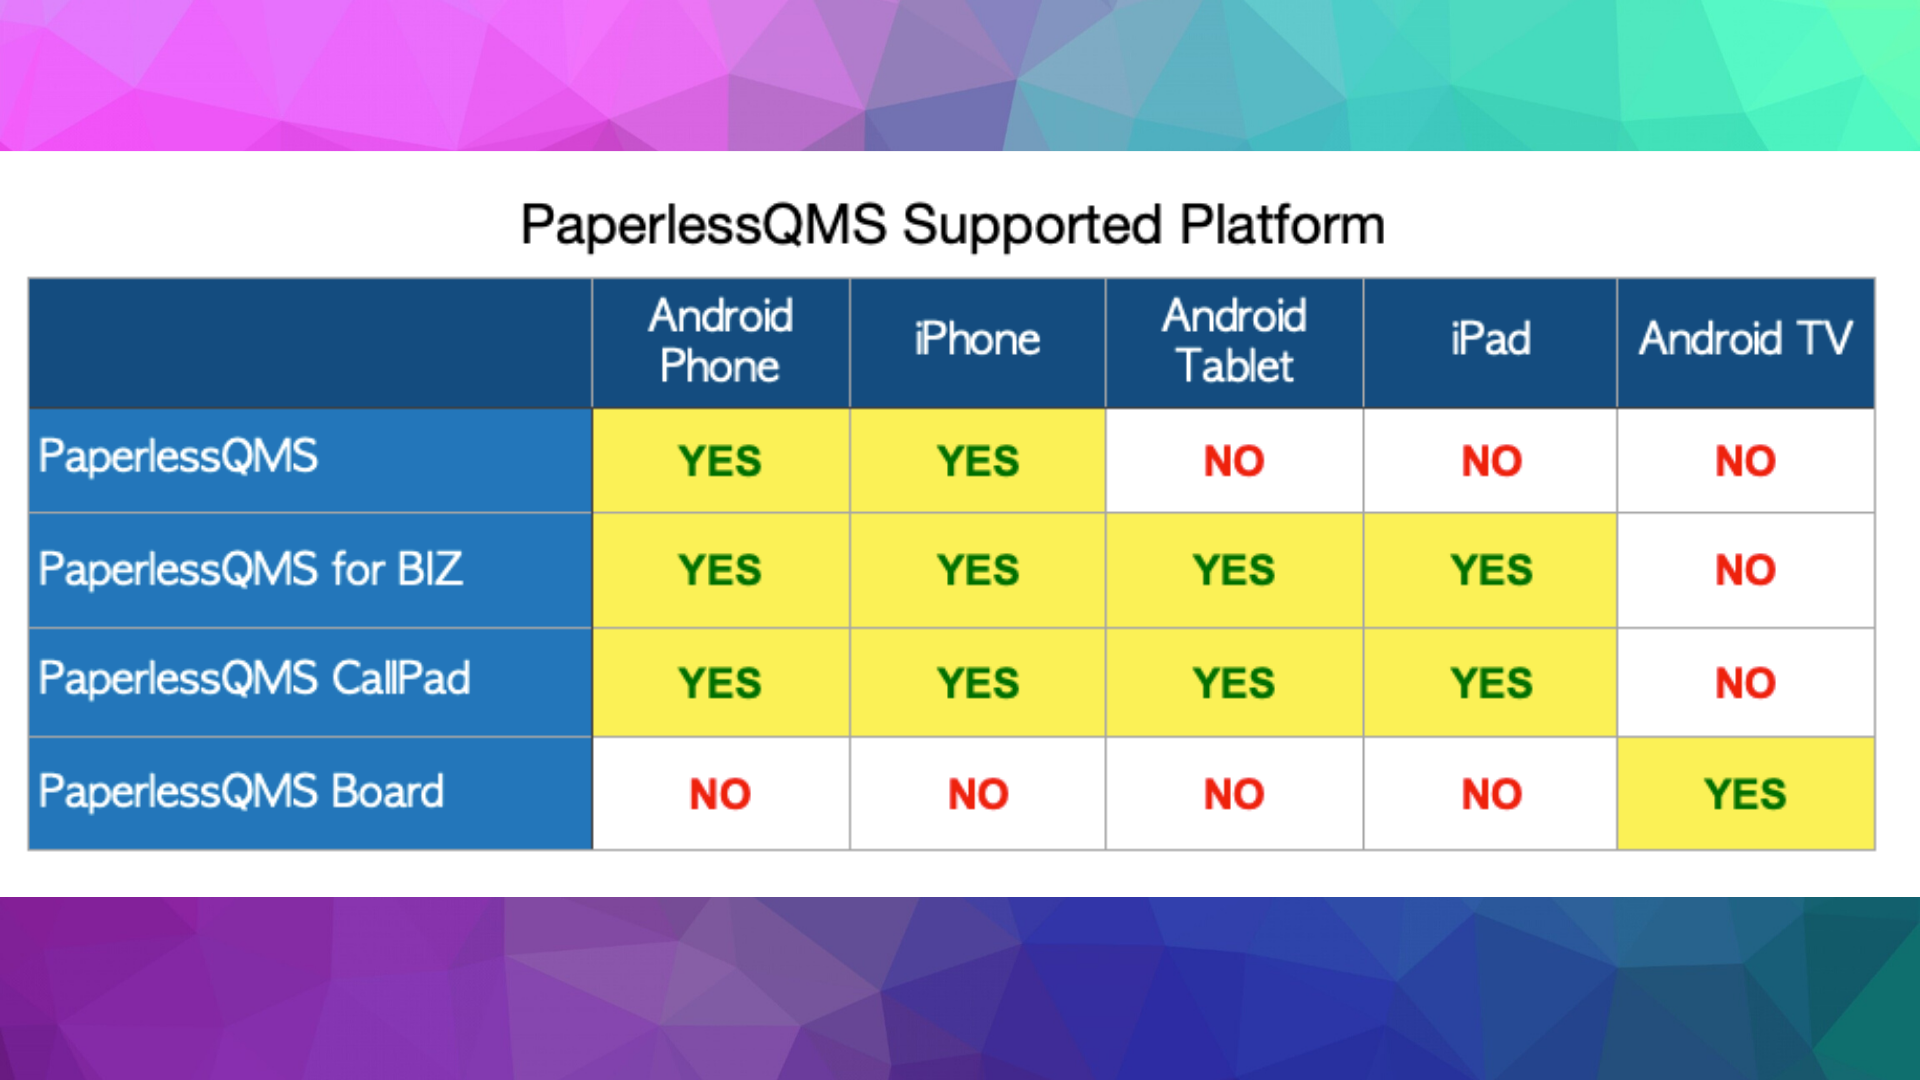 paperlessqms_supported_platform